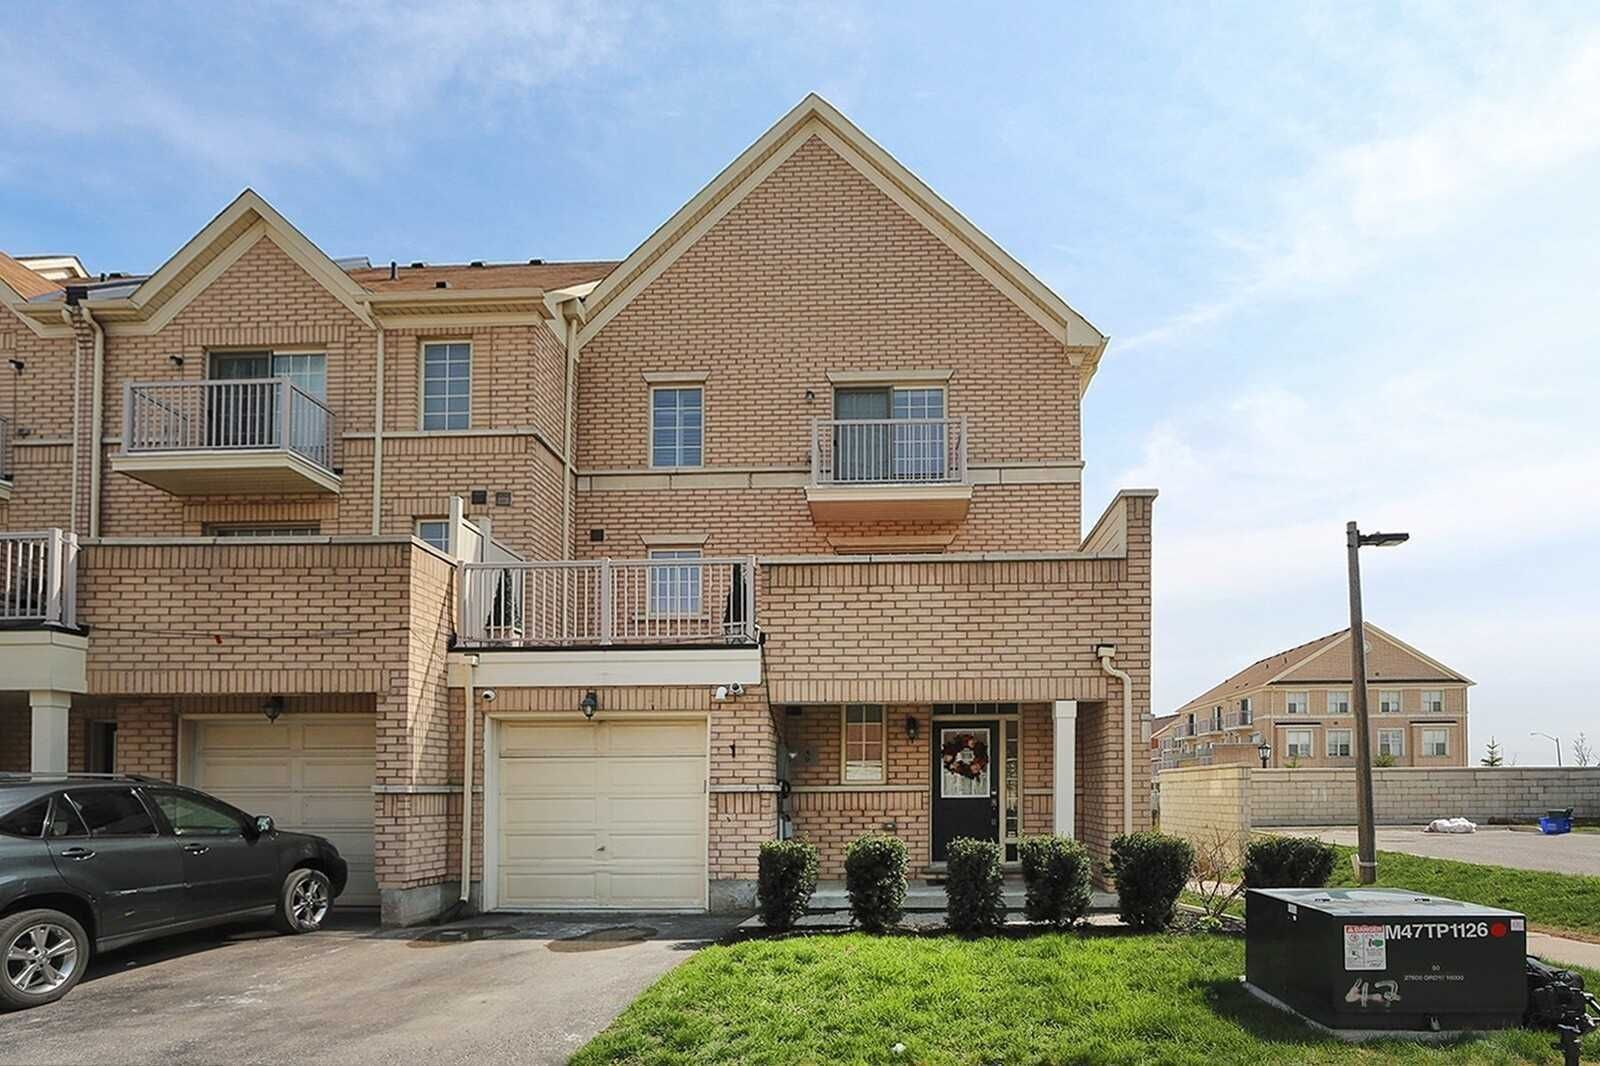 Main Photo: 6 Cathedral High Street in Markham: Cathedraltown House (3-Storey) for sale : MLS®# N5276509